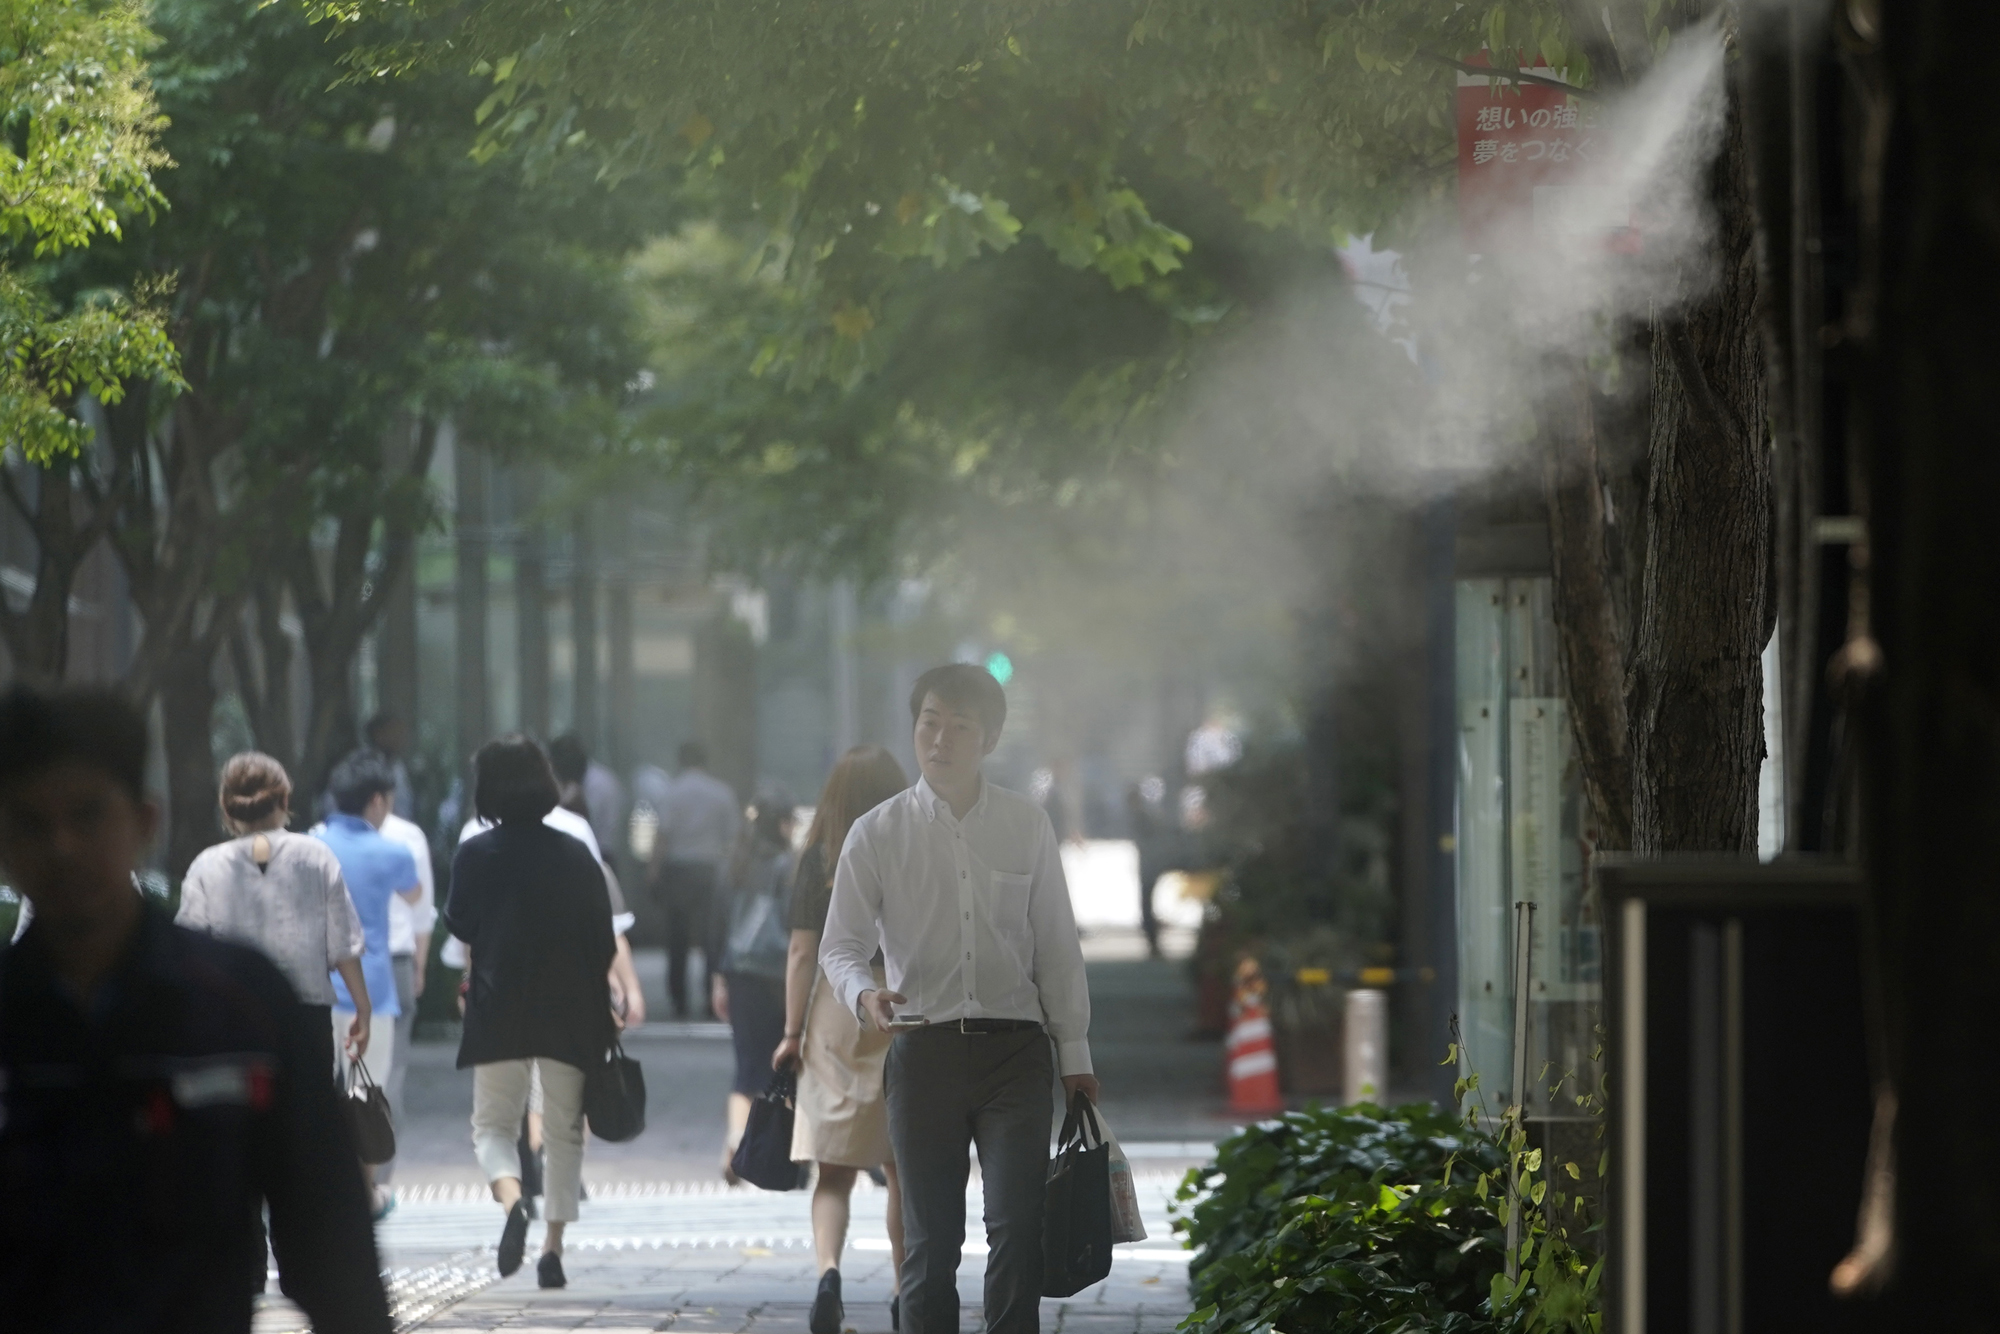 A pedestrian walks under a mist cooling system in the Otemachi business district in Tokyo on Monday. After temperatures spiked in many areas following the end of the rainy season, there have been reports of deaths and hospitalizations due to heat-related medical issues across the country. The Meteorological Agency said temperatures were expected to remain above average in the upcoming week. | BLOOMBERG